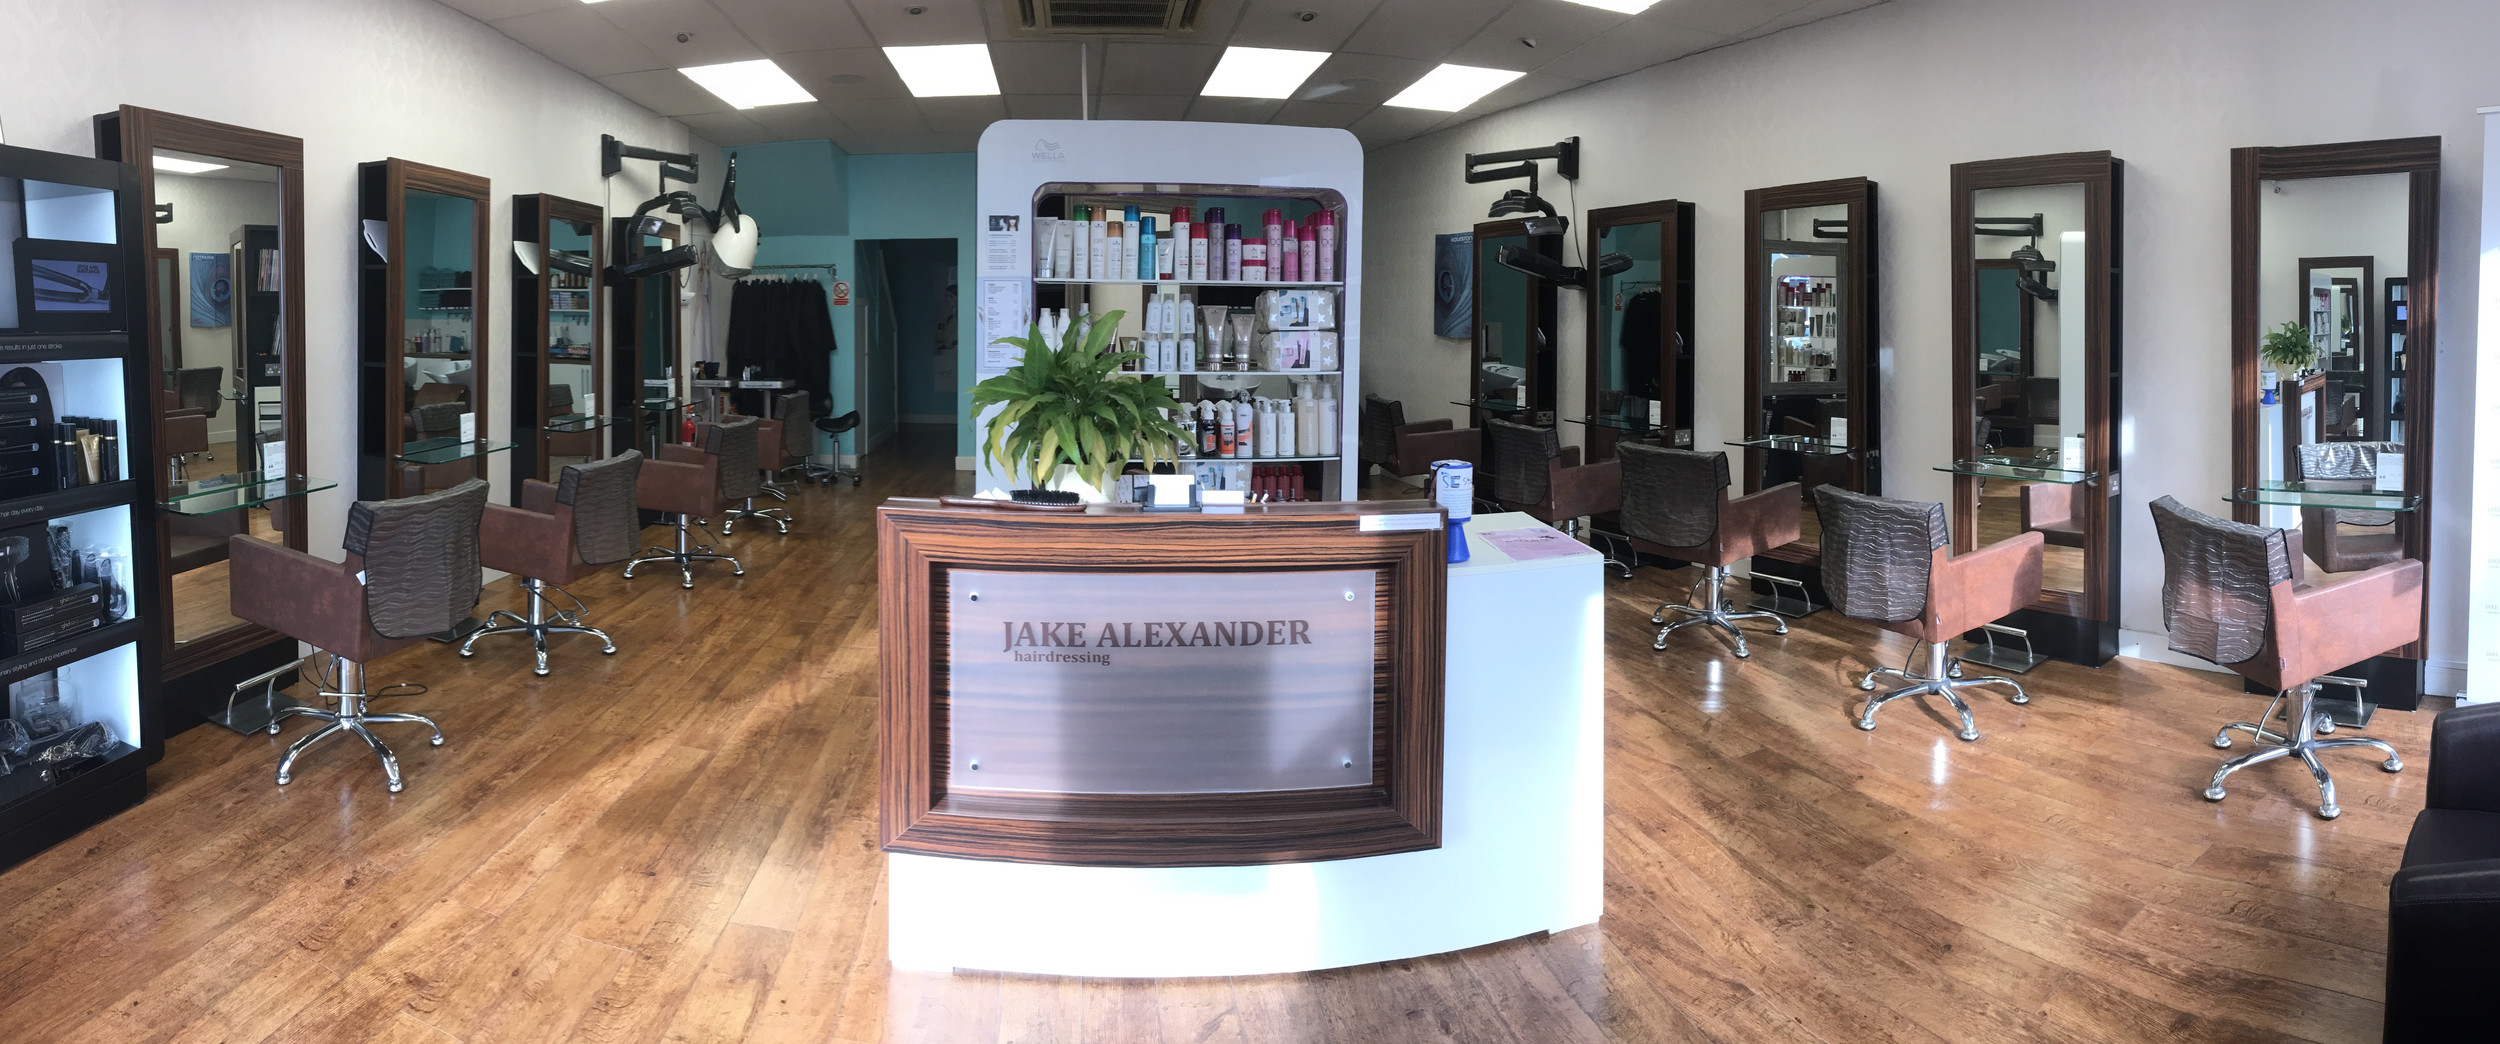 Hairdressing Salon Jake Alexander Hairdressing Runcorn